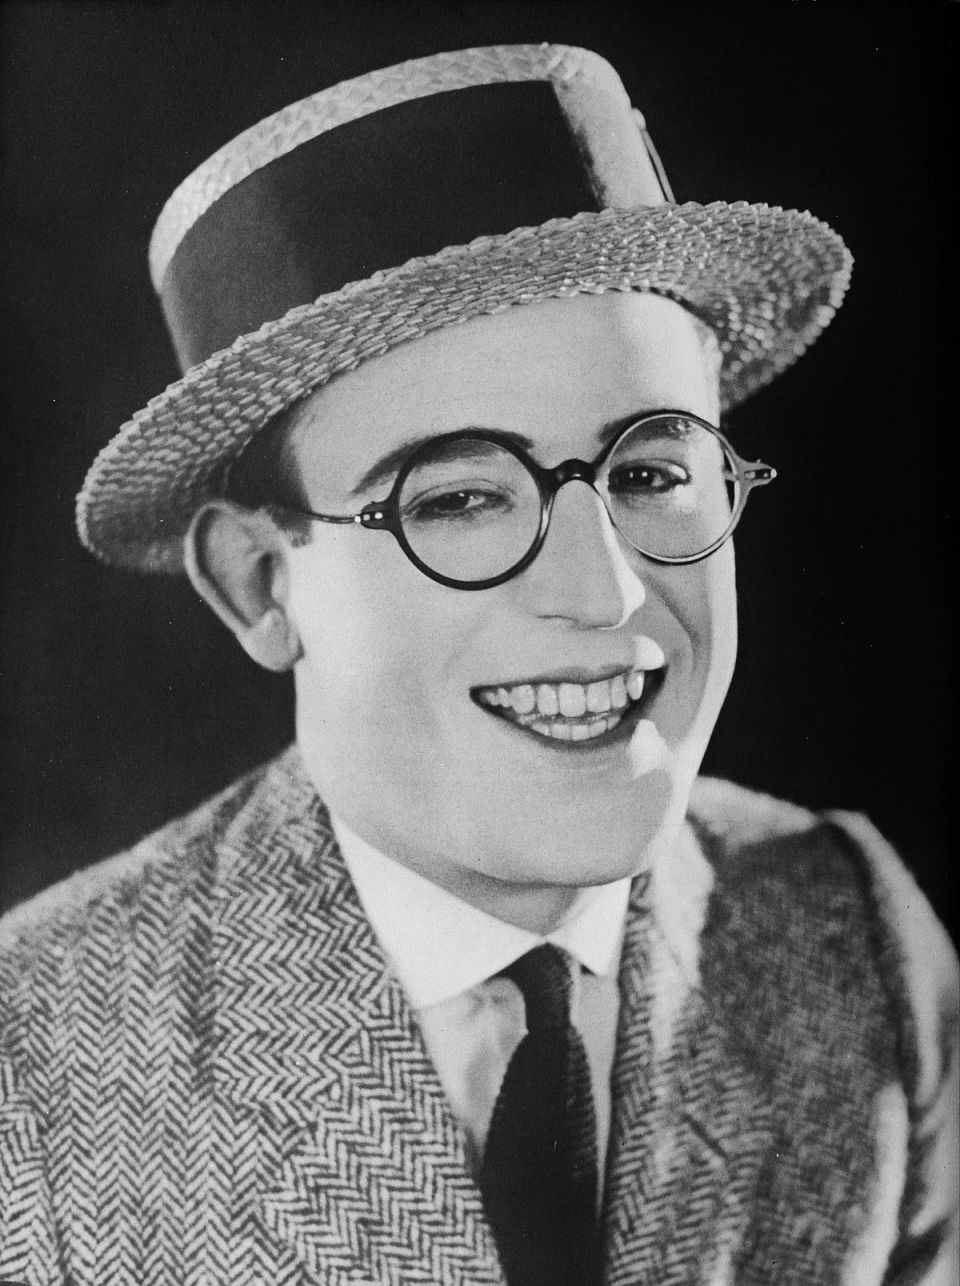 A Harold Lloyd - A Pictorial History of the Silent Screen